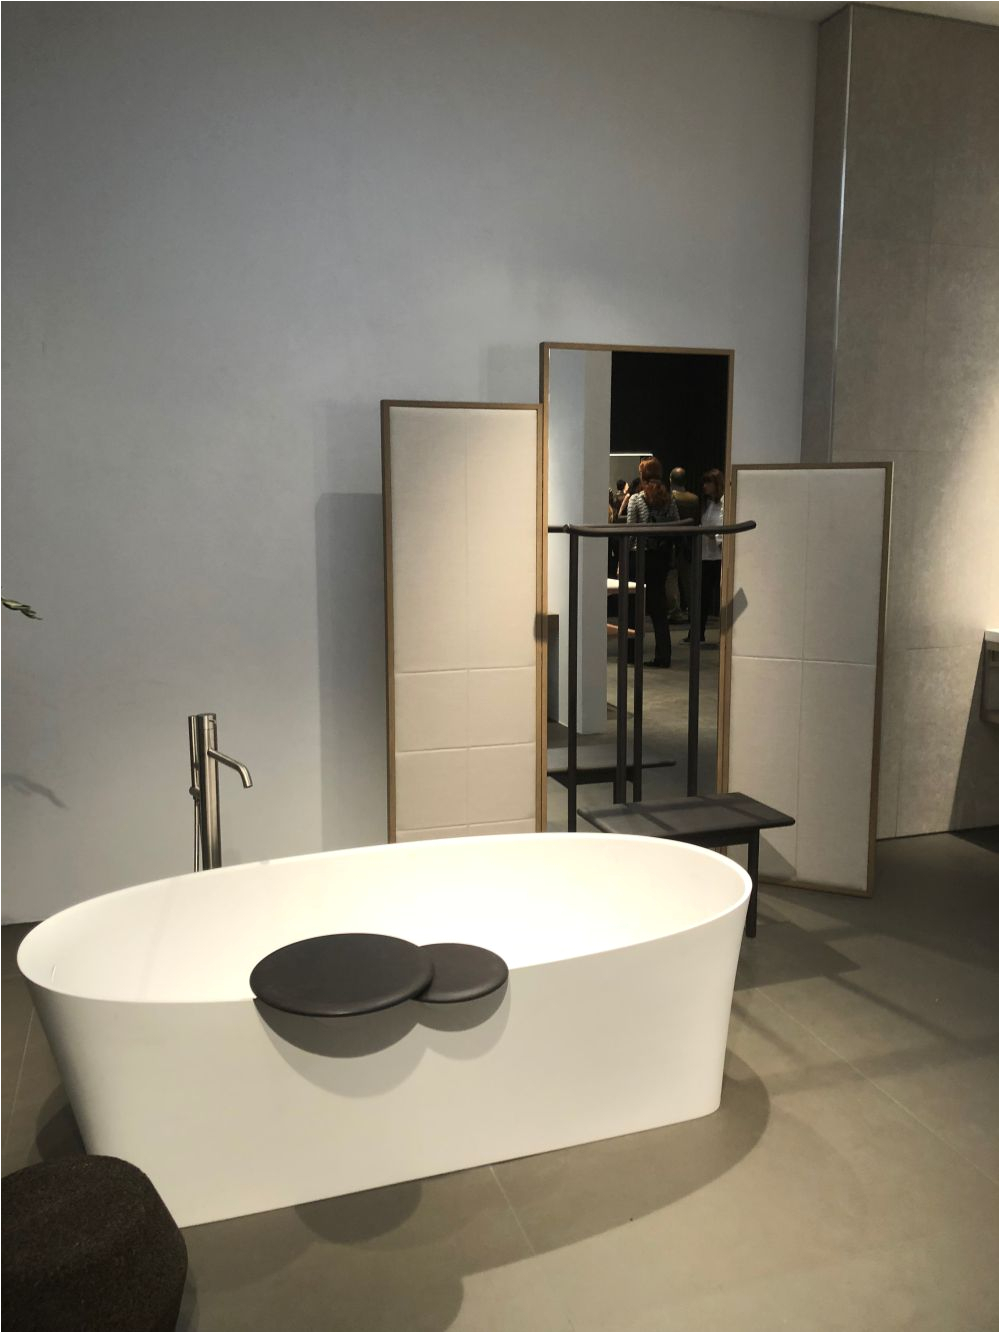 Freestanding Bathtub Size How to Tell if the Standard Bathtub Size Suits You